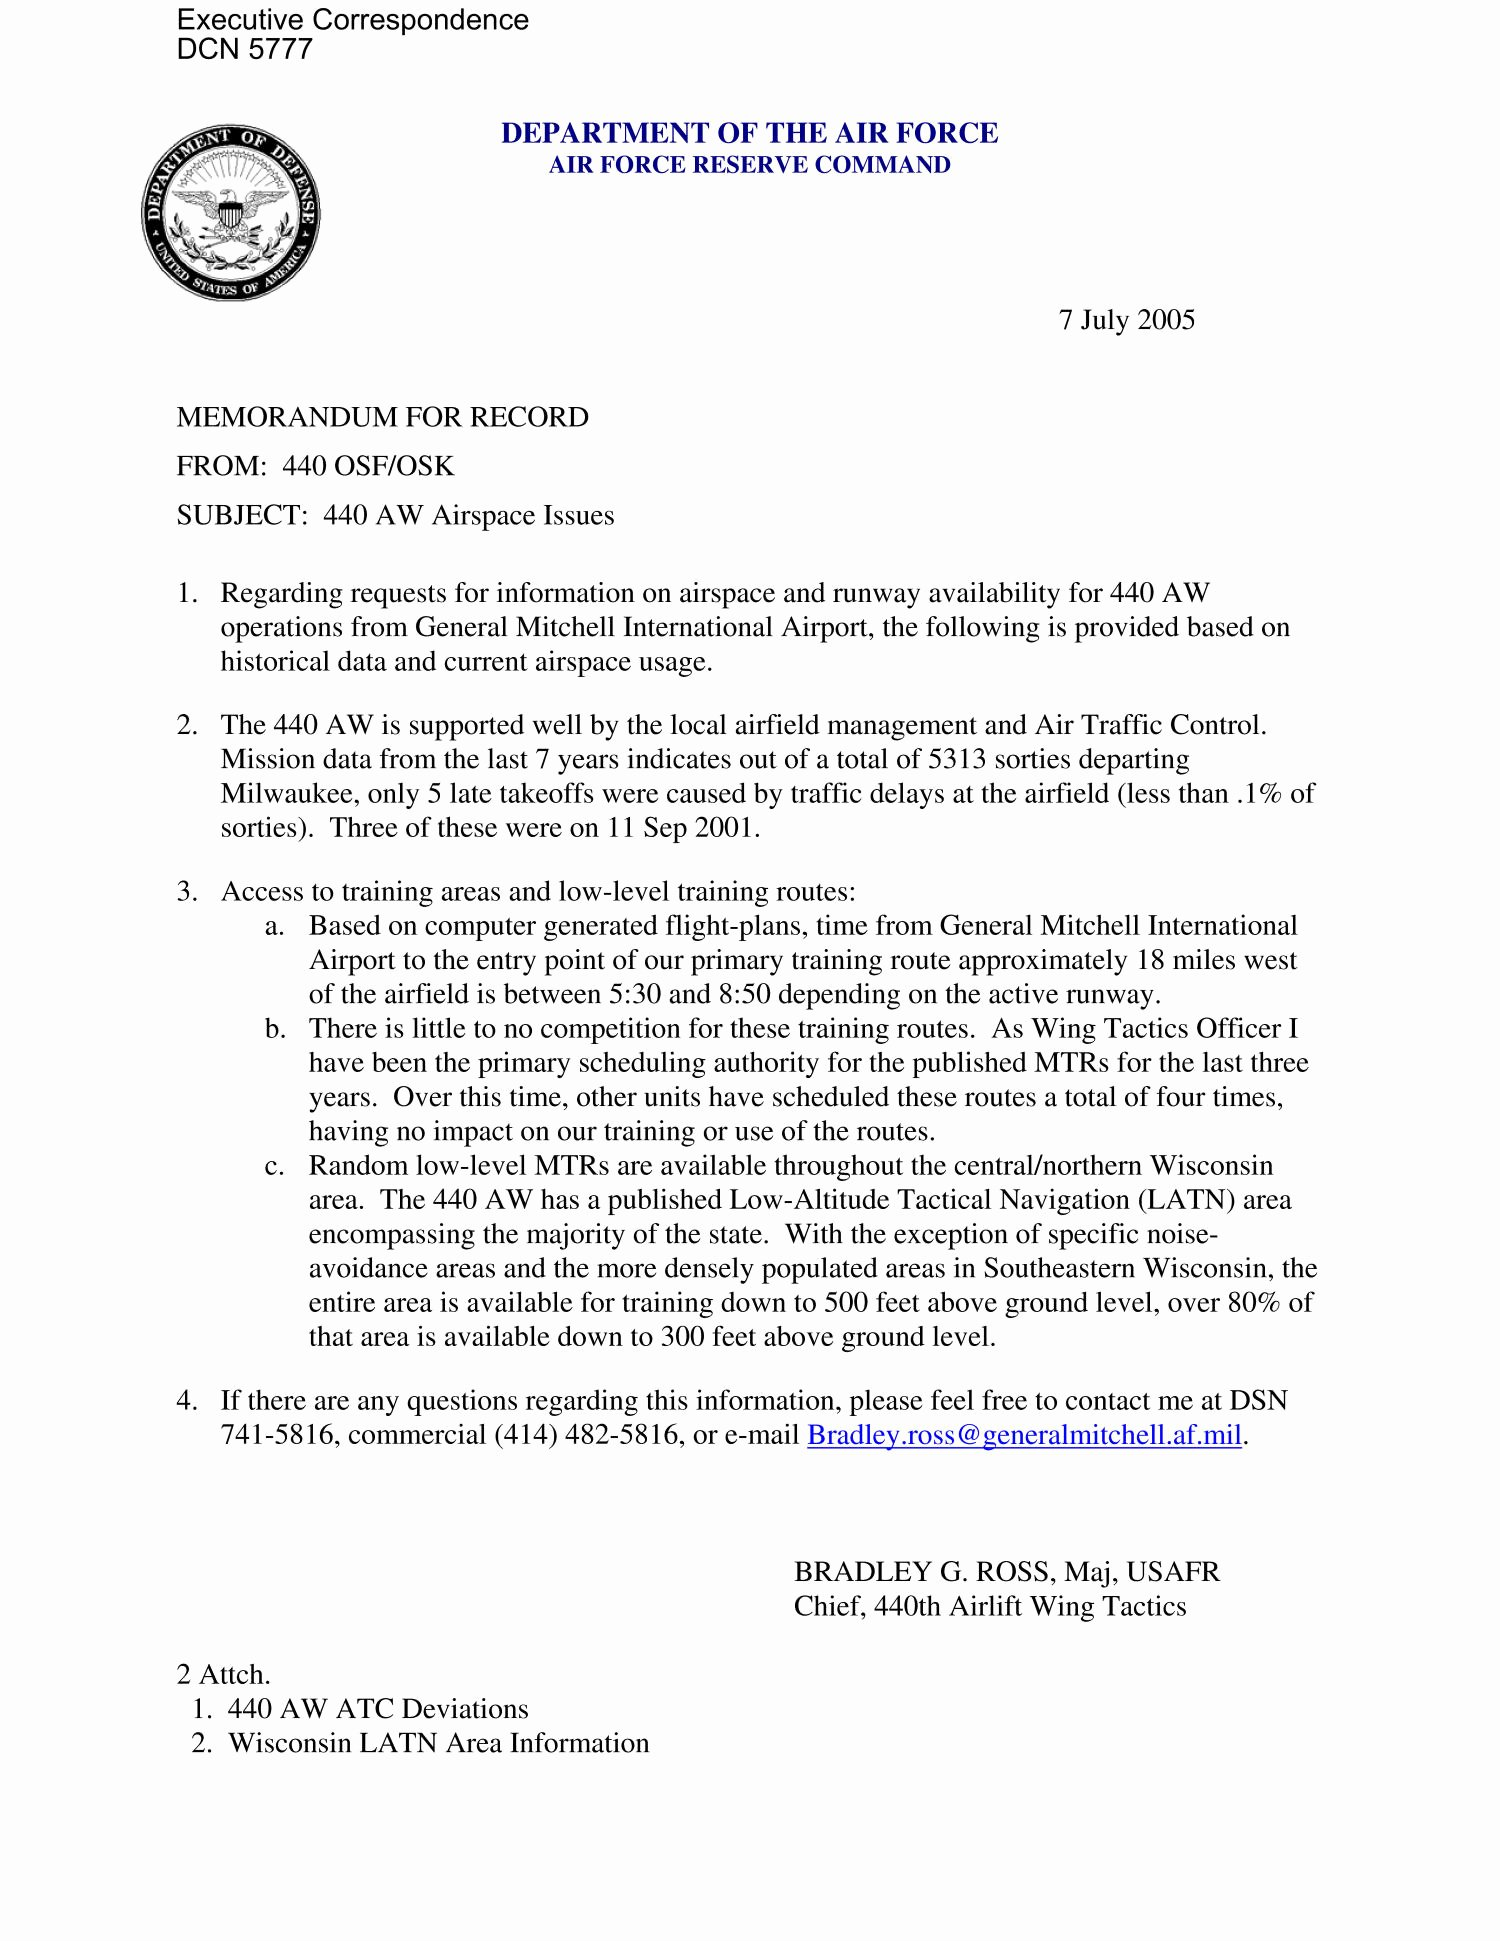 Memo for Record Template Elegant Executive Correspondence – Memorandum for Record Dated 07